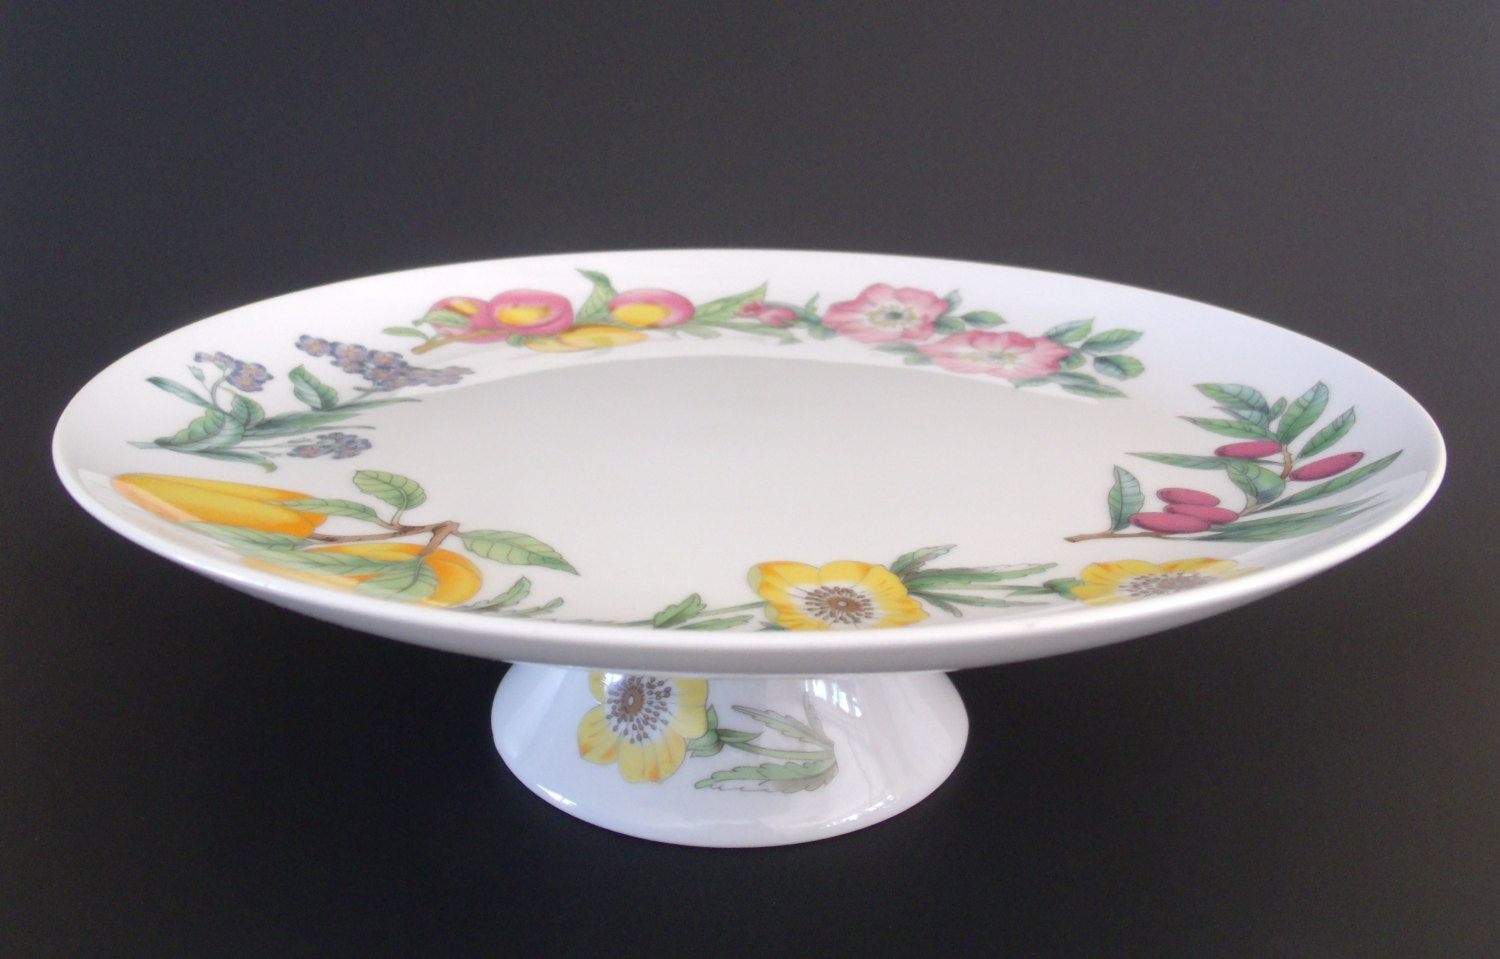 Shafford Porcelain Pedestal Cake Plate Fruit Flowers